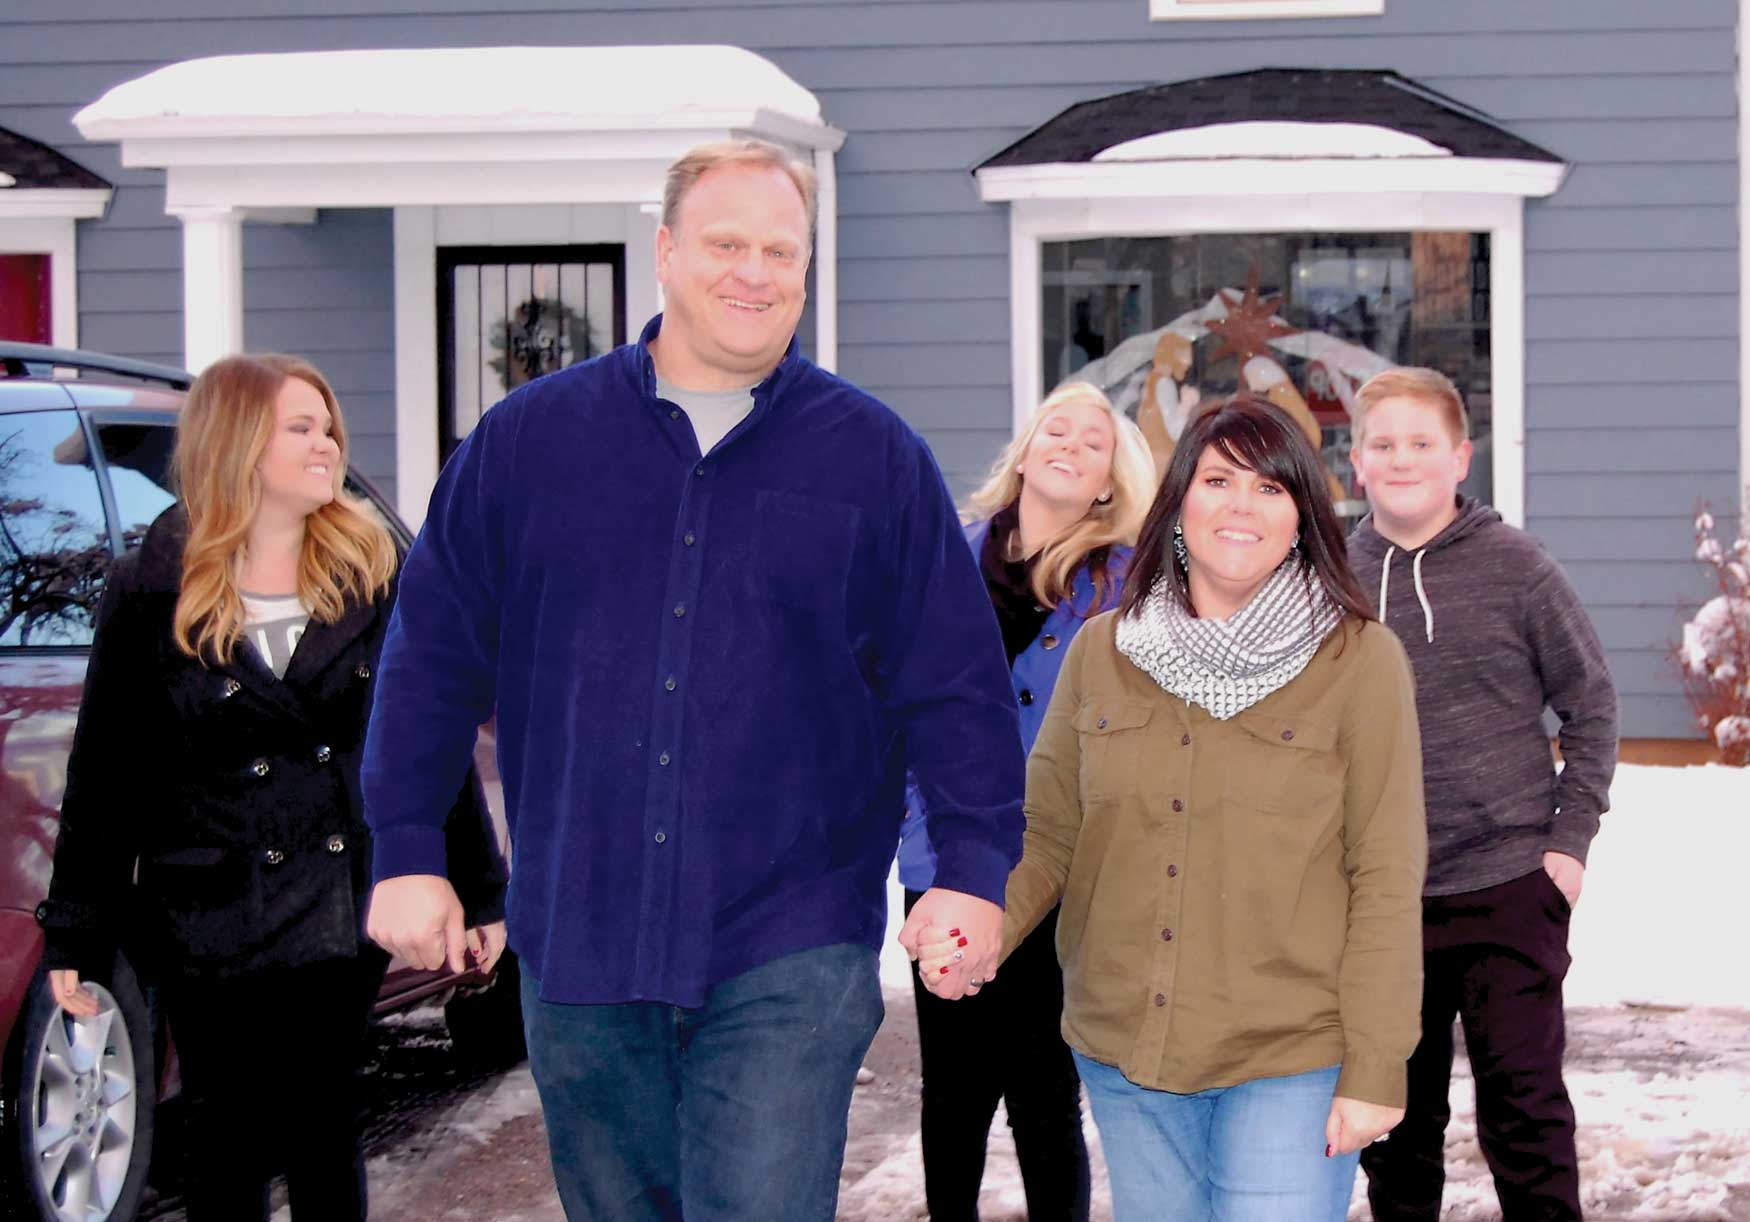 Russ holding hands with his wife Tammy.  Their three kids behind them: Allie, Katelyn, and Jack.